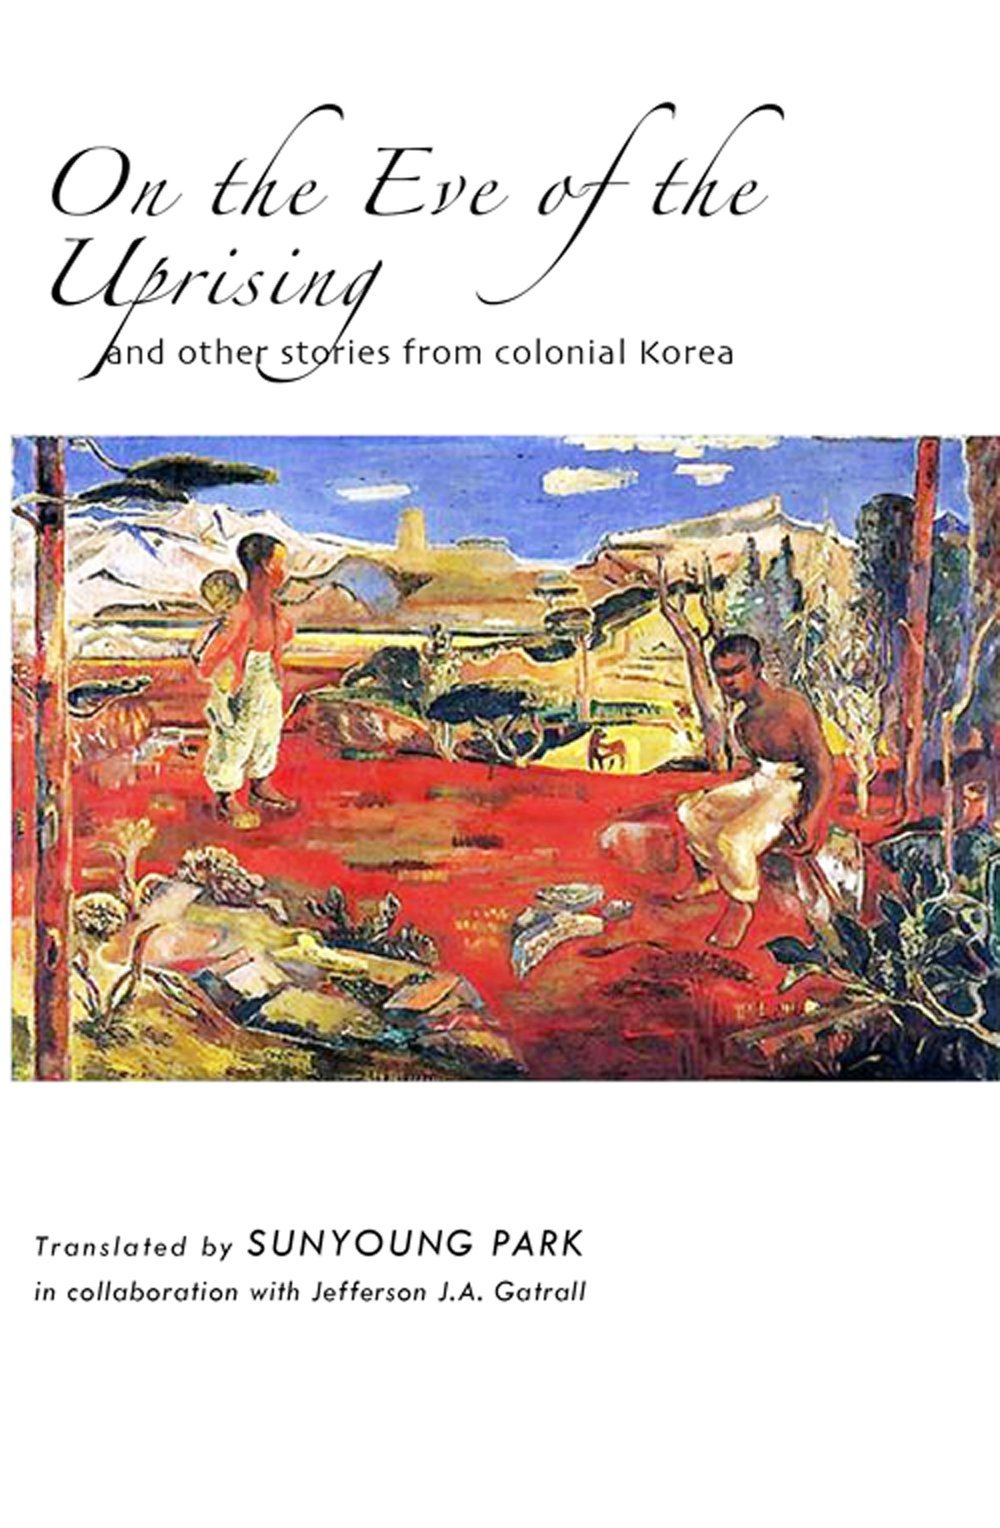 On the Eve of the Uprising and Other Stories from Colonial Korea: Sunyoung  Park, Jefferson J. A. Gatrall: 9781933947495: Amazon.com: Books